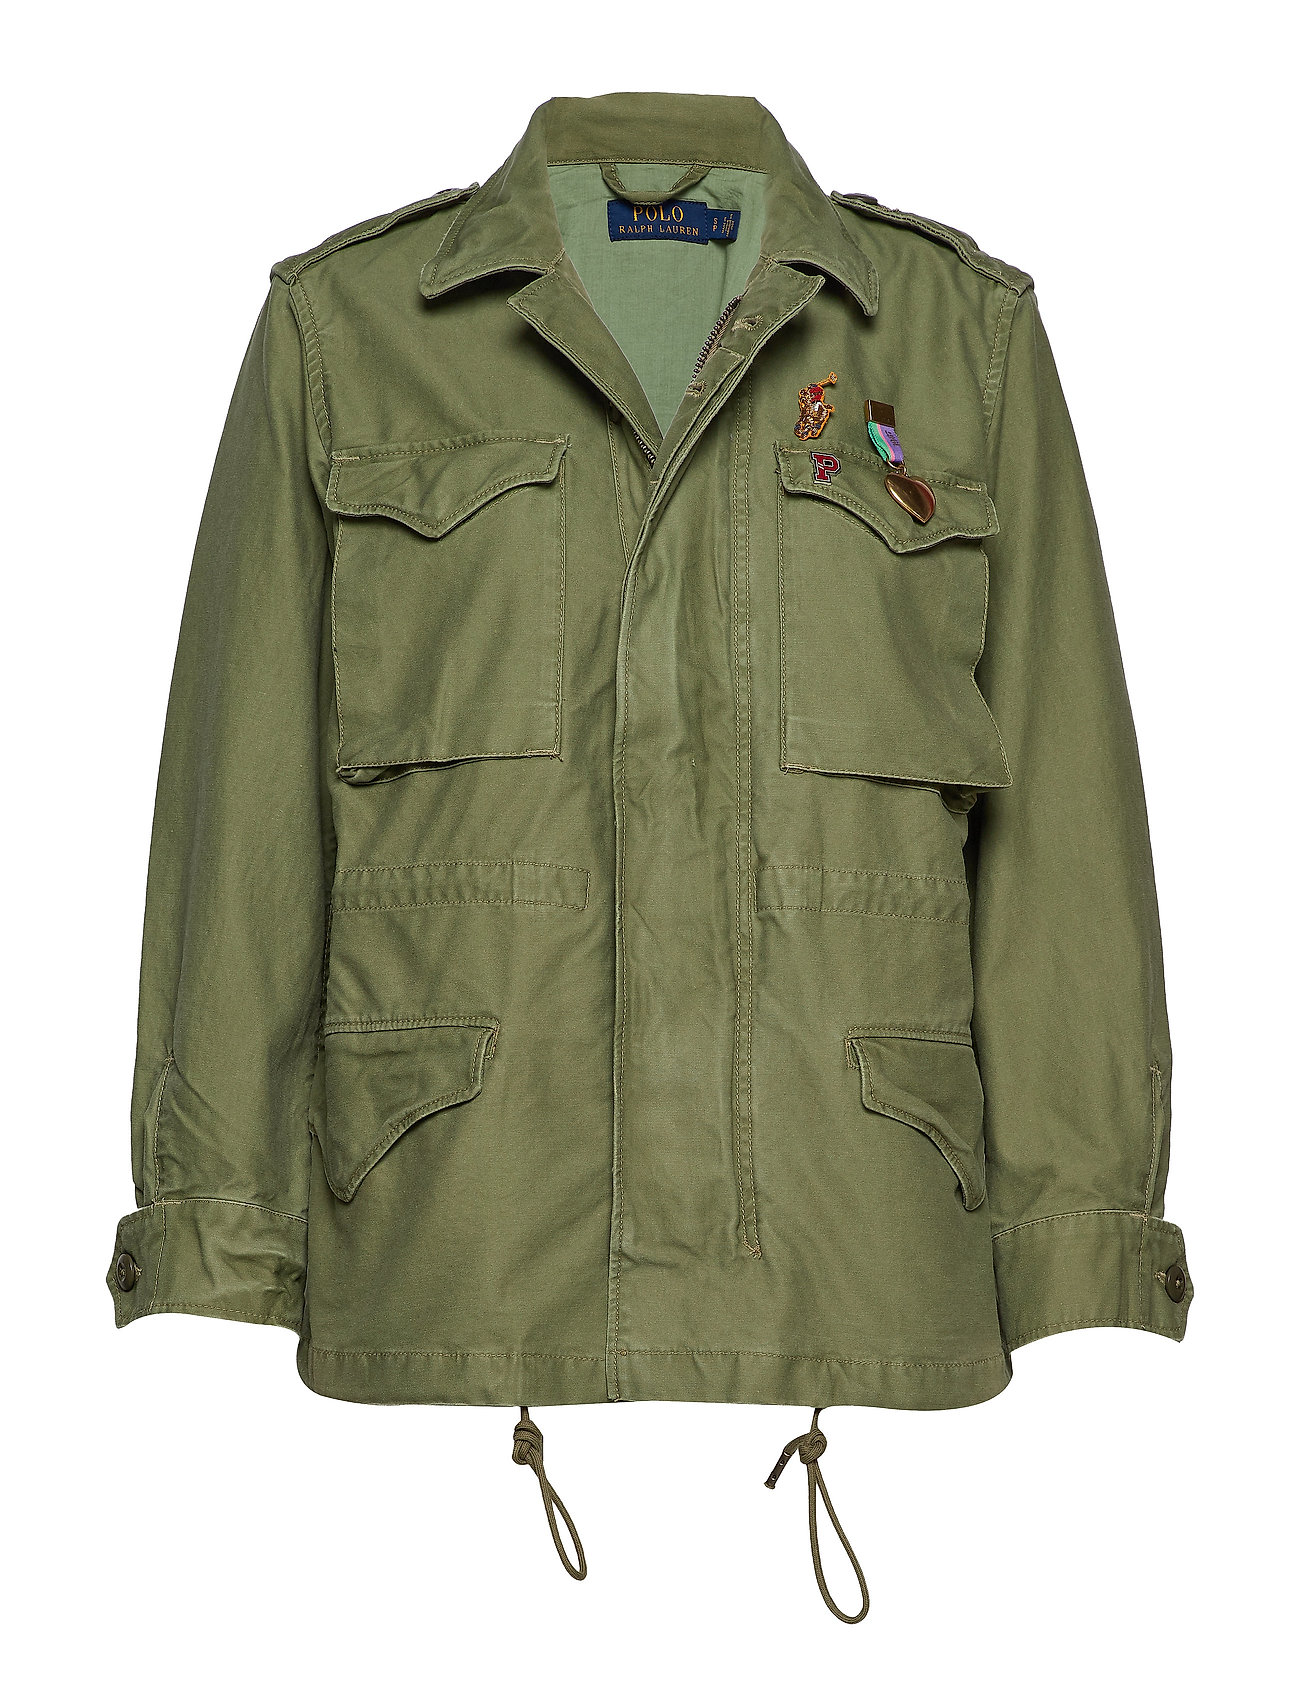 Polo Ralph Lauren Cotton Twill Military Jacket - ARMY OLIVE